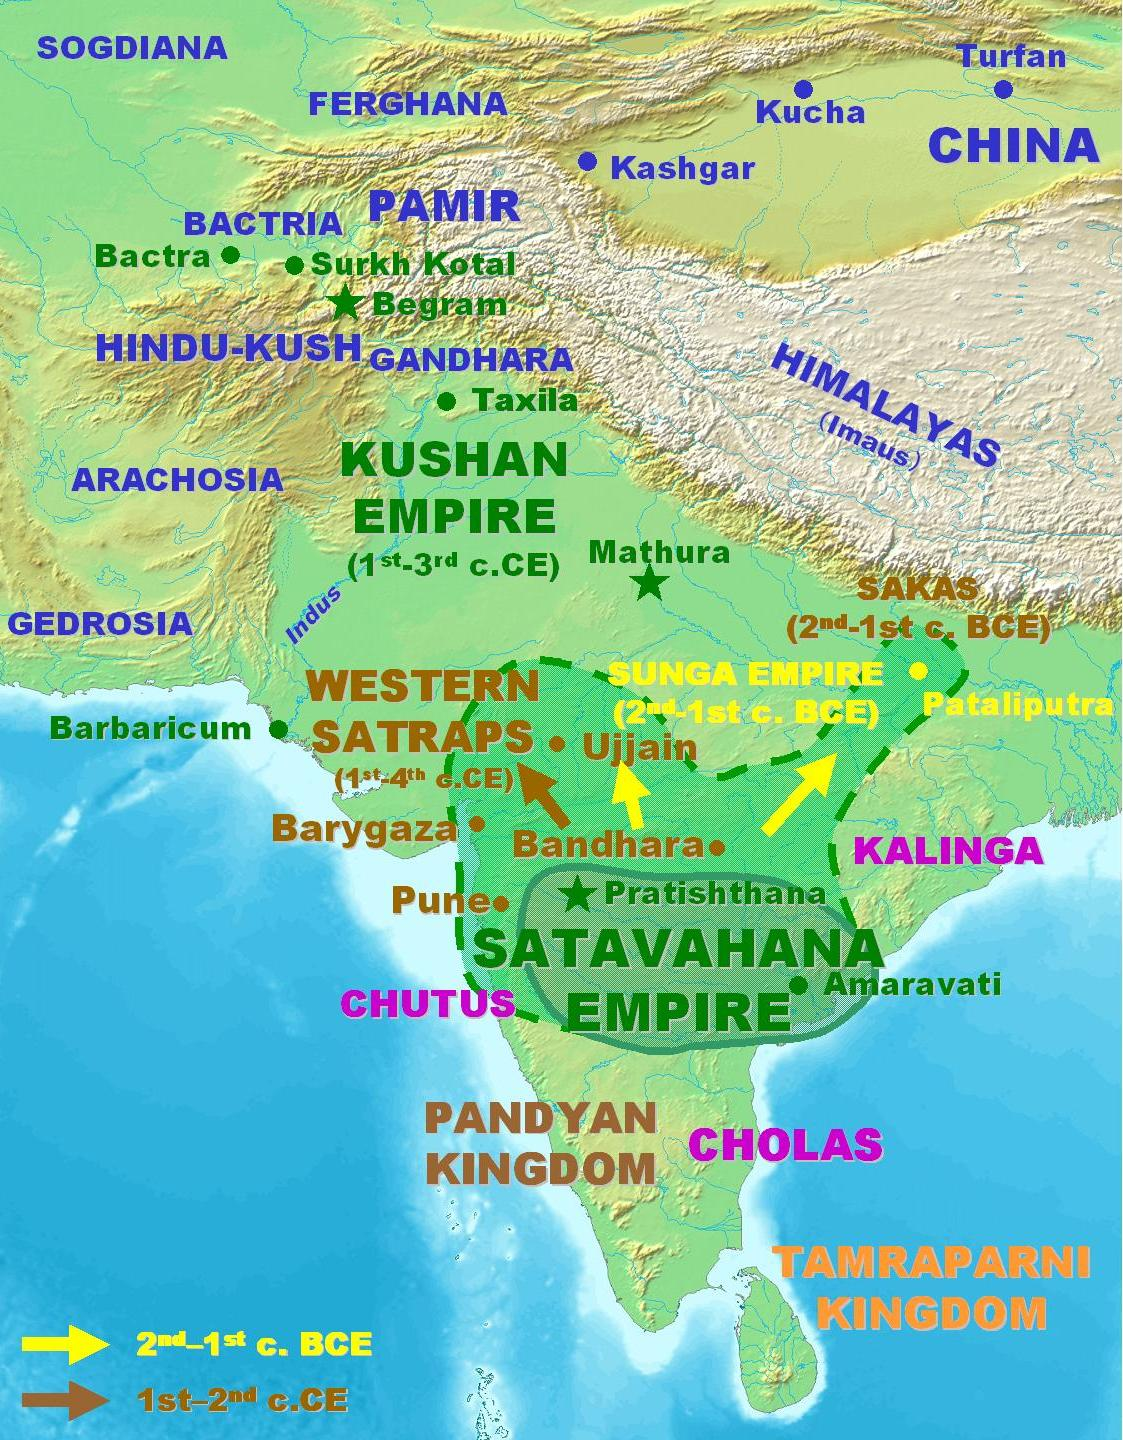 MARXIST: Satavahana Dynasty and Kharavelan Empire